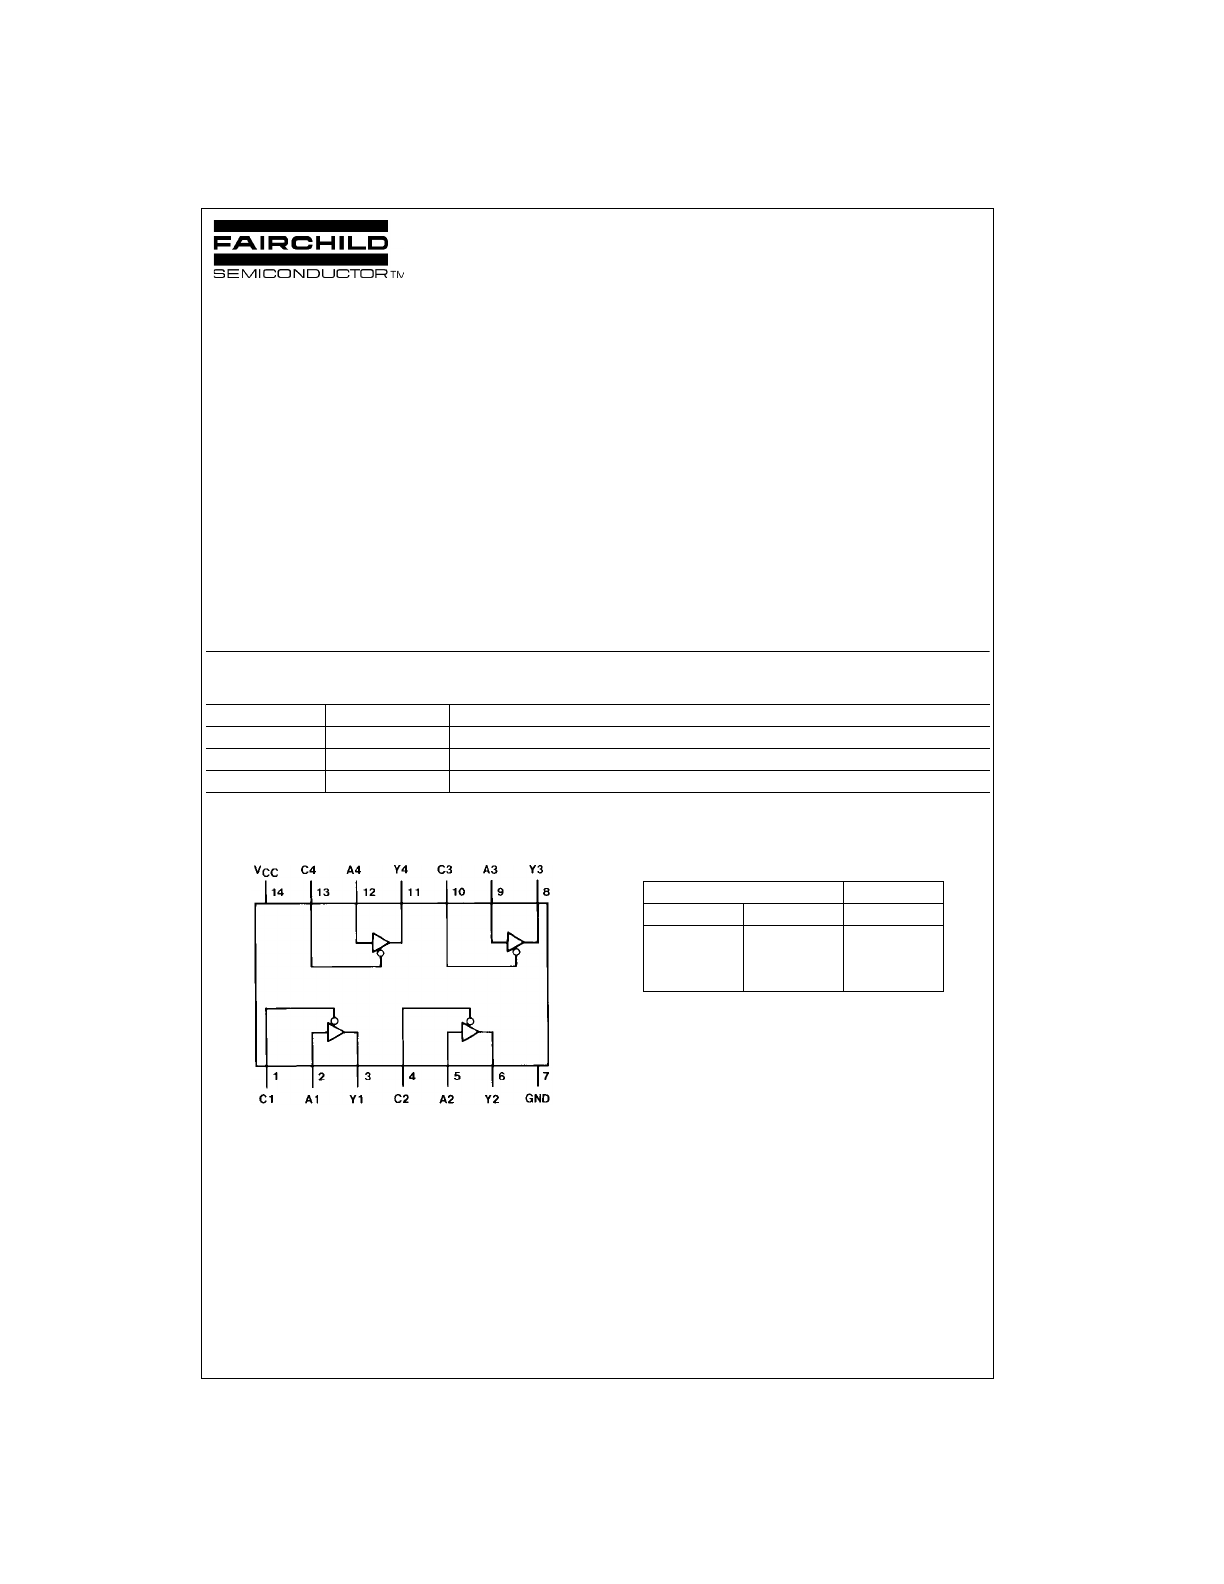 Dm74ls125a Quad 3 State Buffer Datasheet Lookup 2 Circuit Diagram Background Image